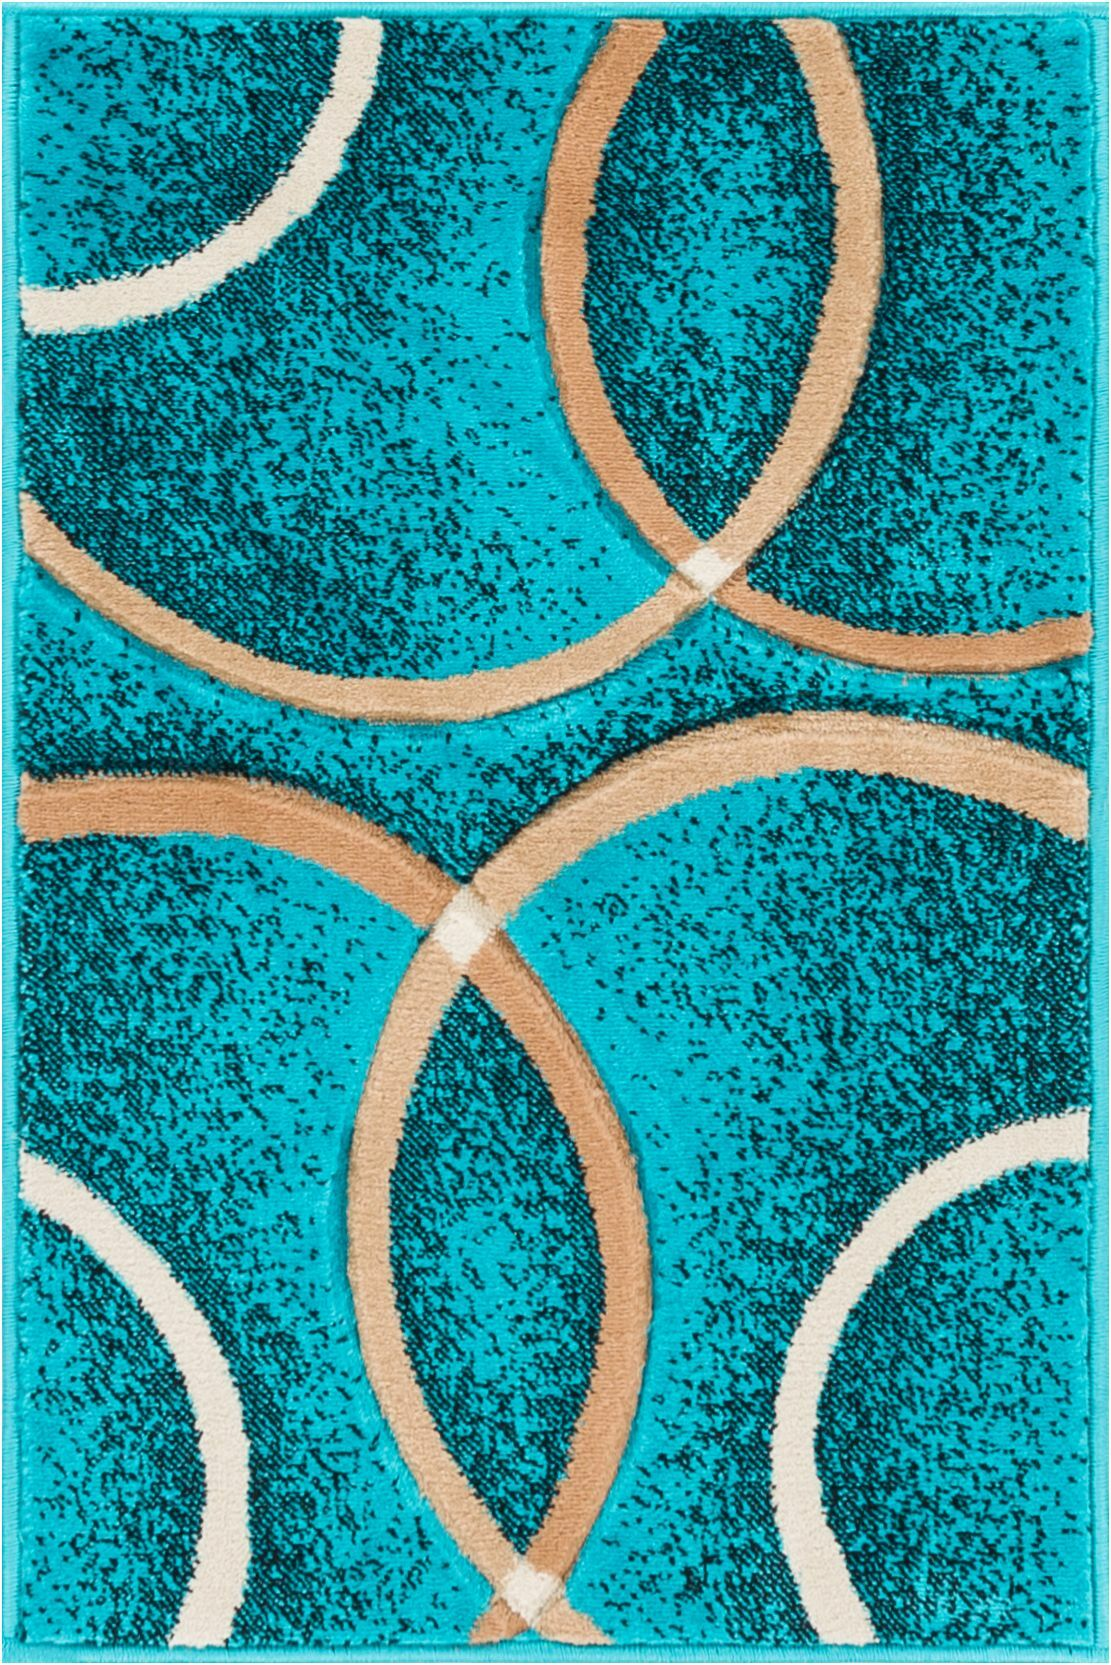 Bernard Chester Circles Modern Geometric Turquoise Area Rug Rug Size: 5'3